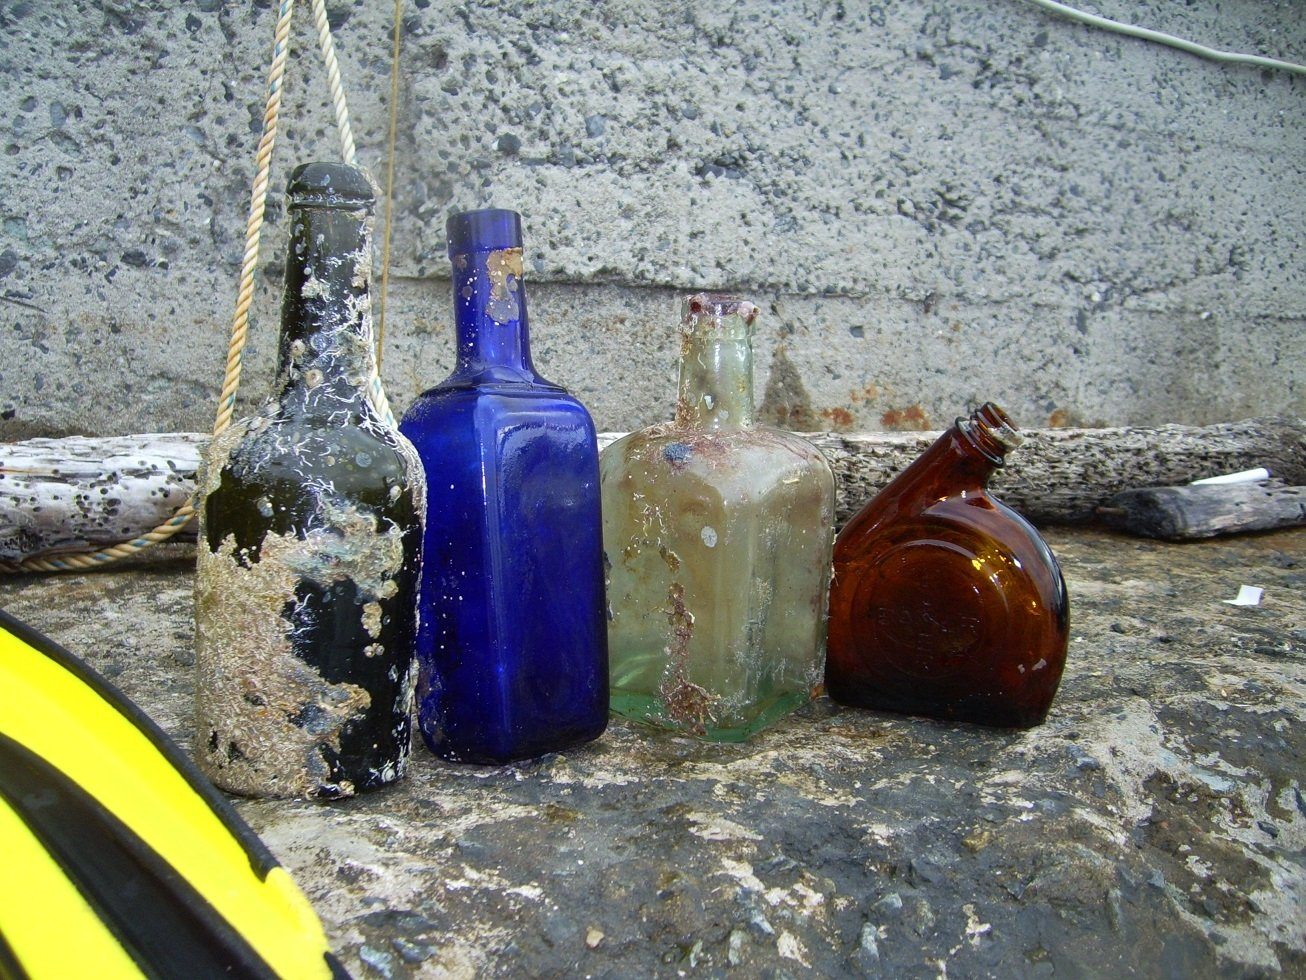 Historic bottles Hakan Kabasakal retrieved from the Bosporus are displayed on a ledge, in Istanbul, Turkey, June 20, 2021. (DHA PHOTO)